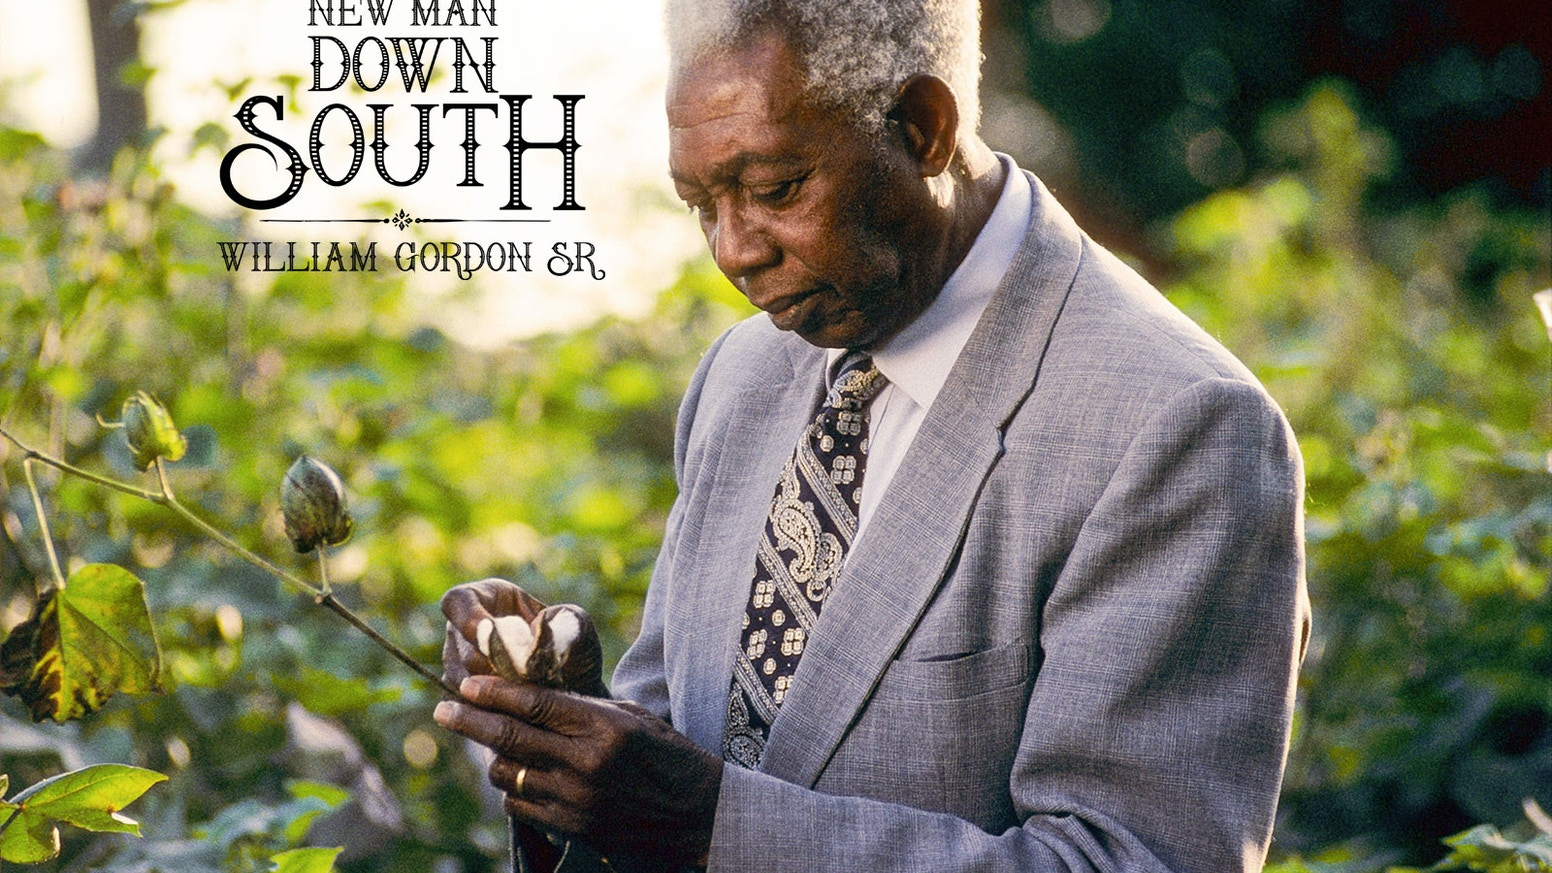 New Man Down South is a memoir by William Gordon, Sr., former Nieman fellow and editor of the Negro newspaper, the Atlanta Daily World.